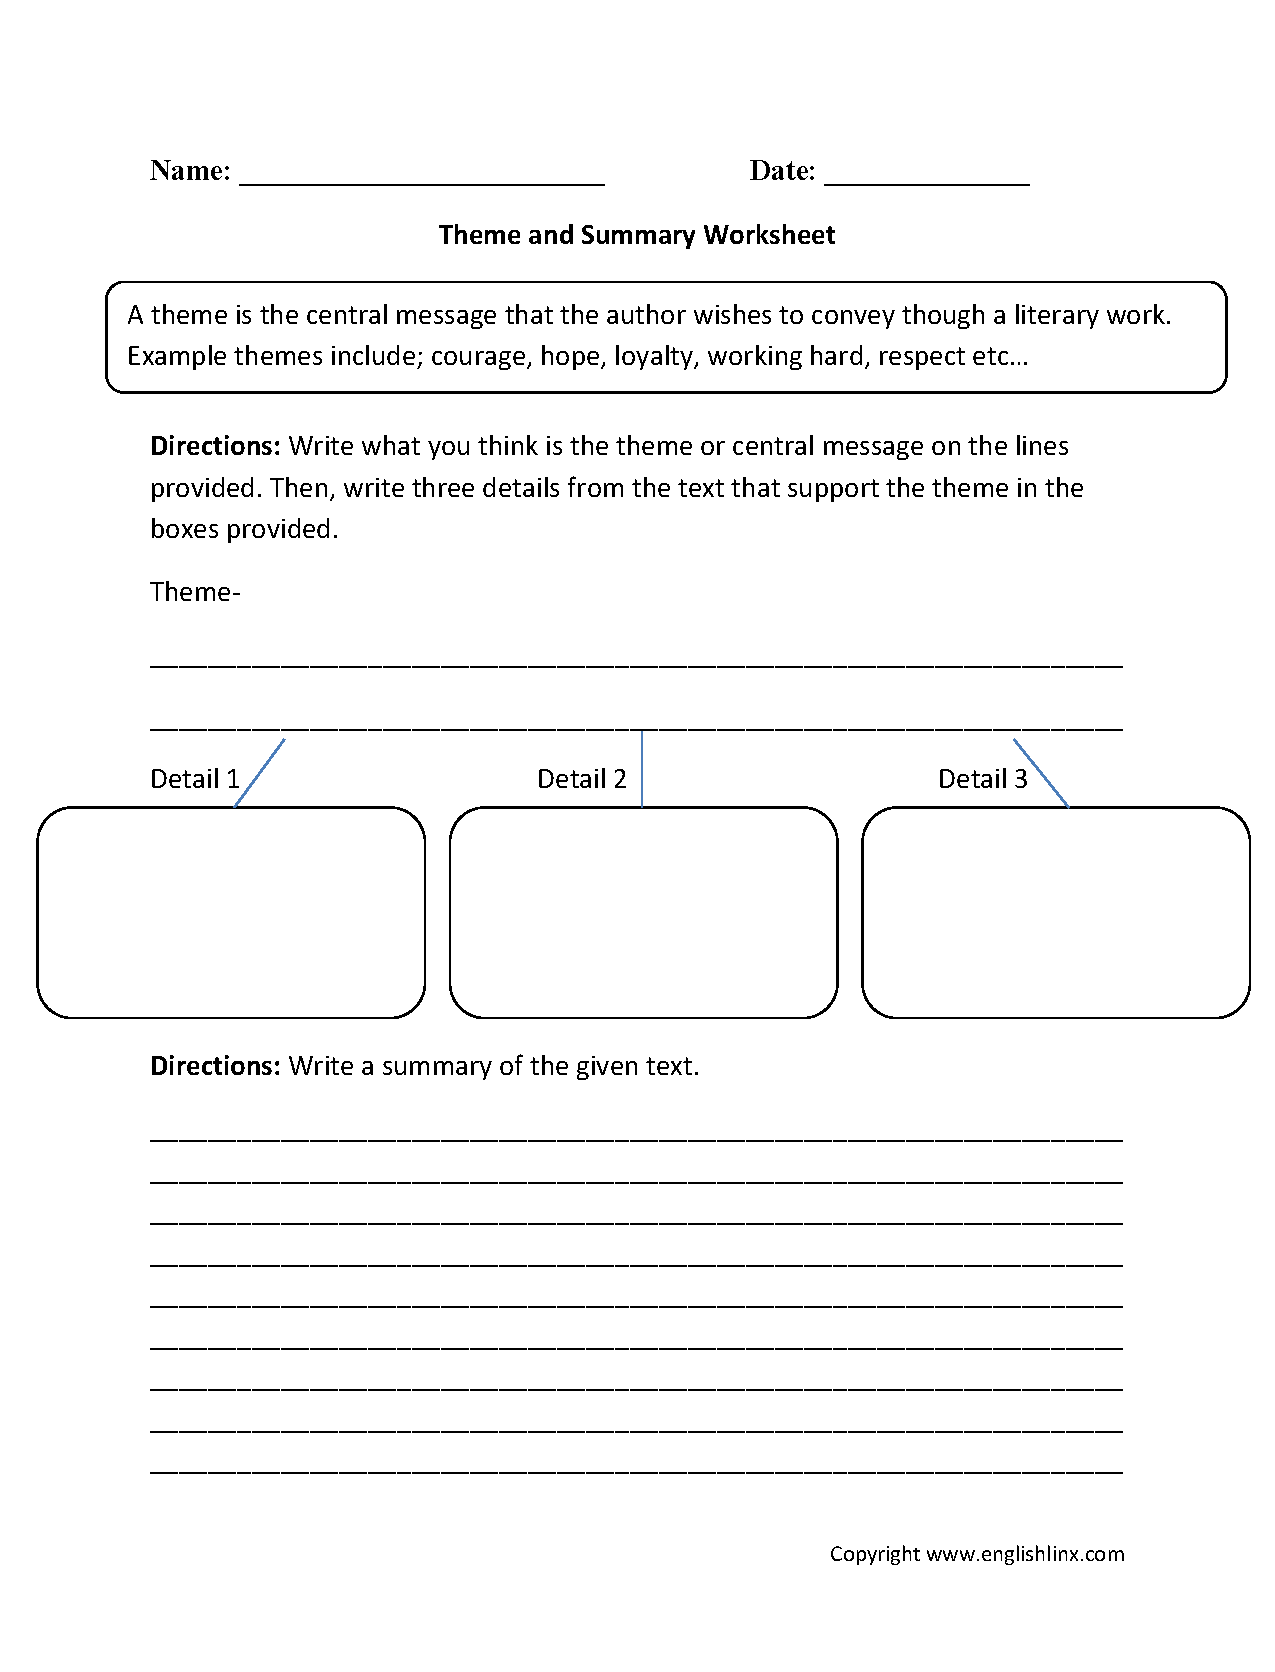 Worksheet Short Stories 5th Grade Mikyu Free Worksheet – Theme Worksheets Middle School